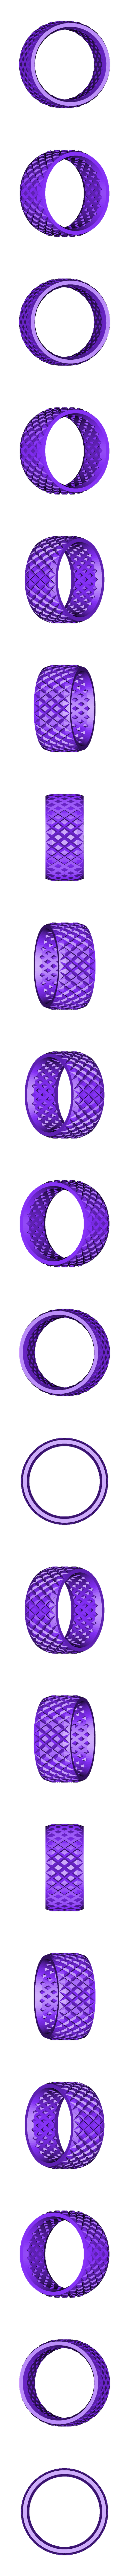 kv2_Example_07.stl Download free SCAD file Knurled Surface Library v2 • 3D printing design, Wachet